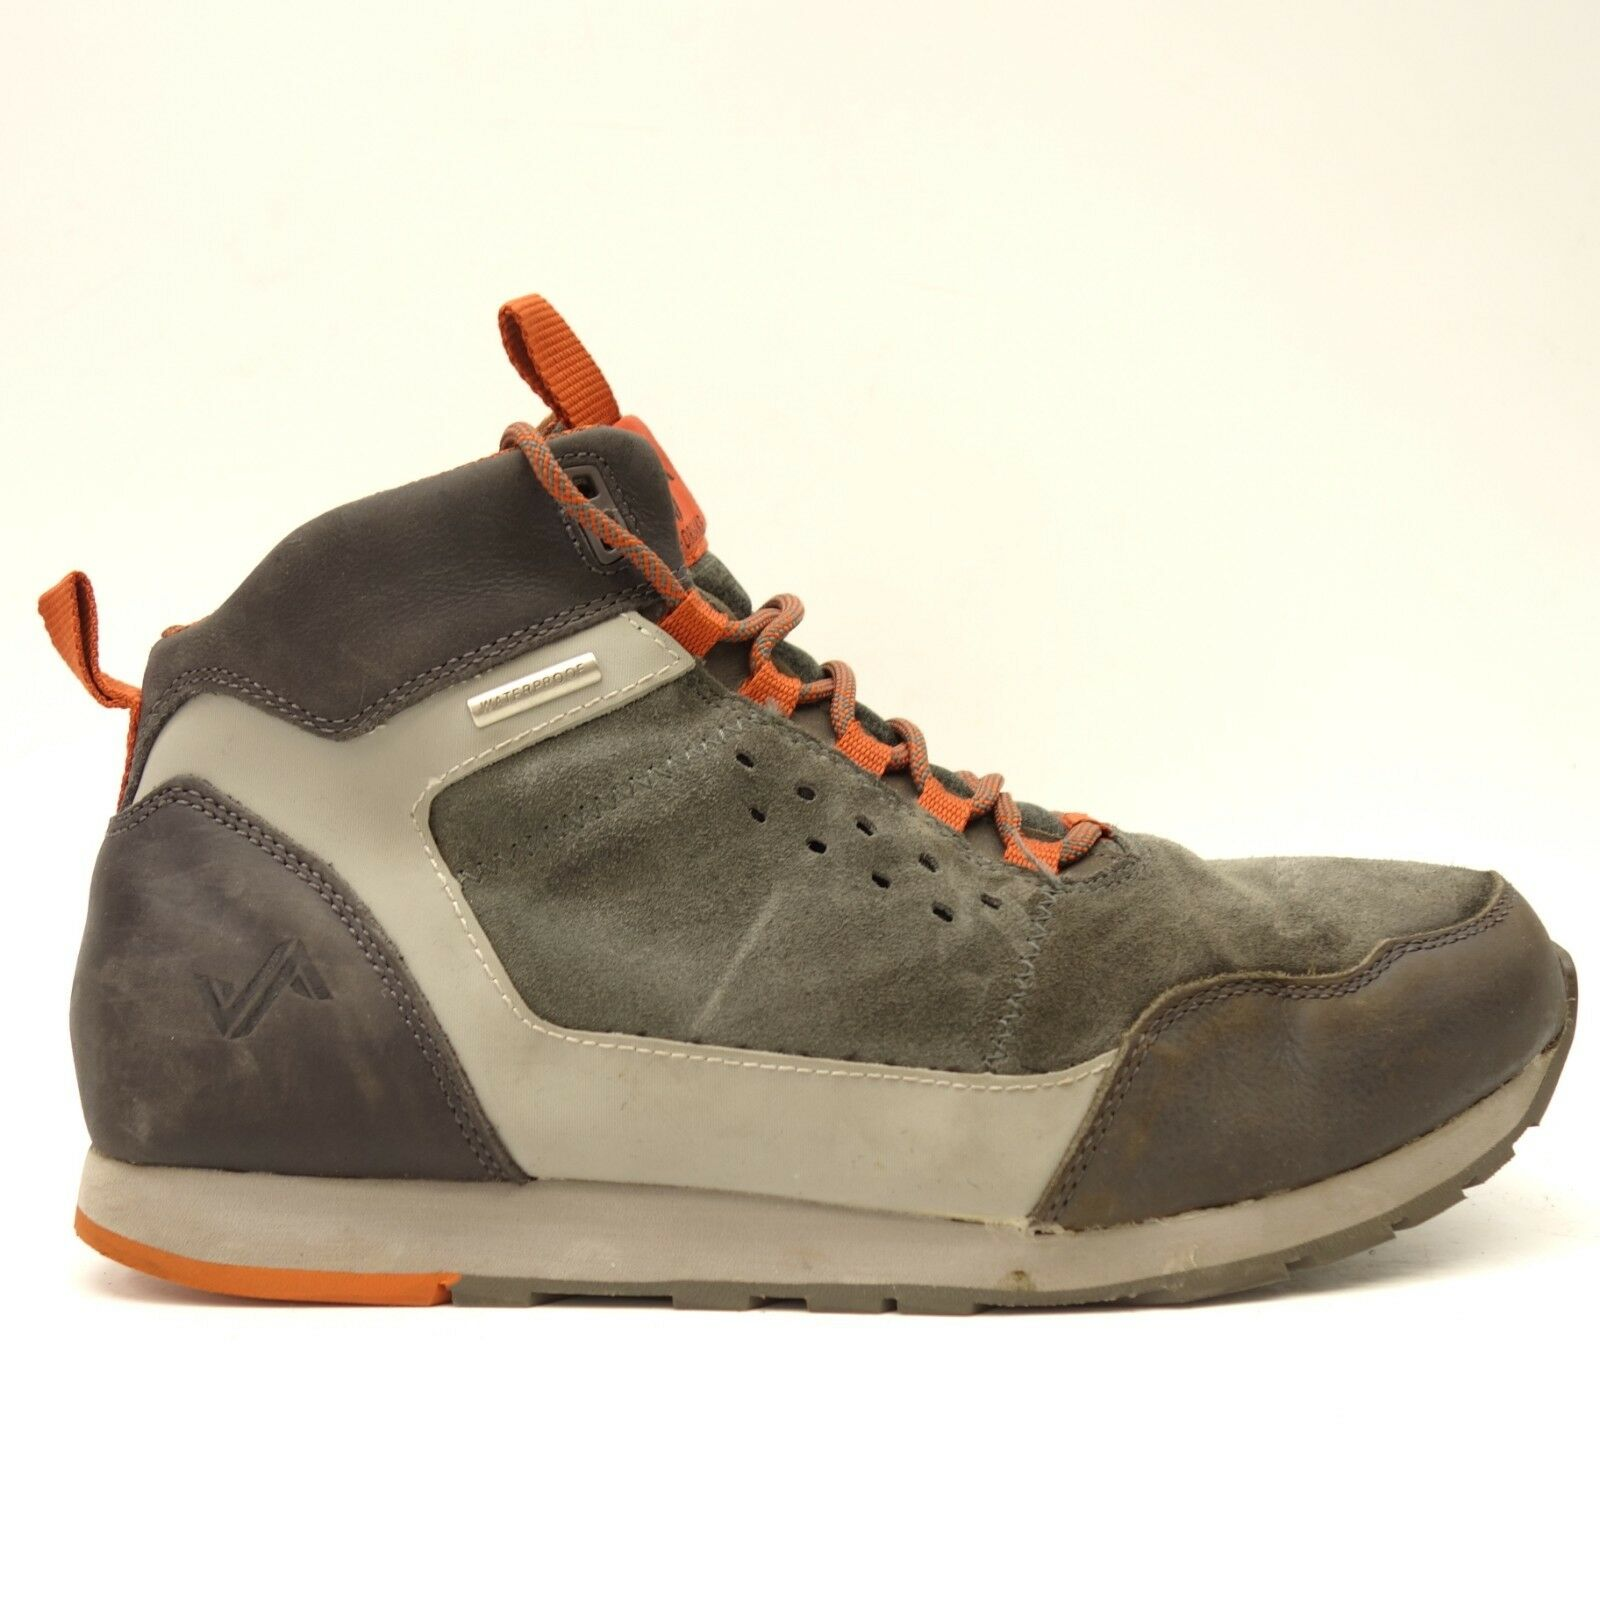 Forsake Mens Driggs Waterproof Leather Athletic Hiking Trail Boots US 10